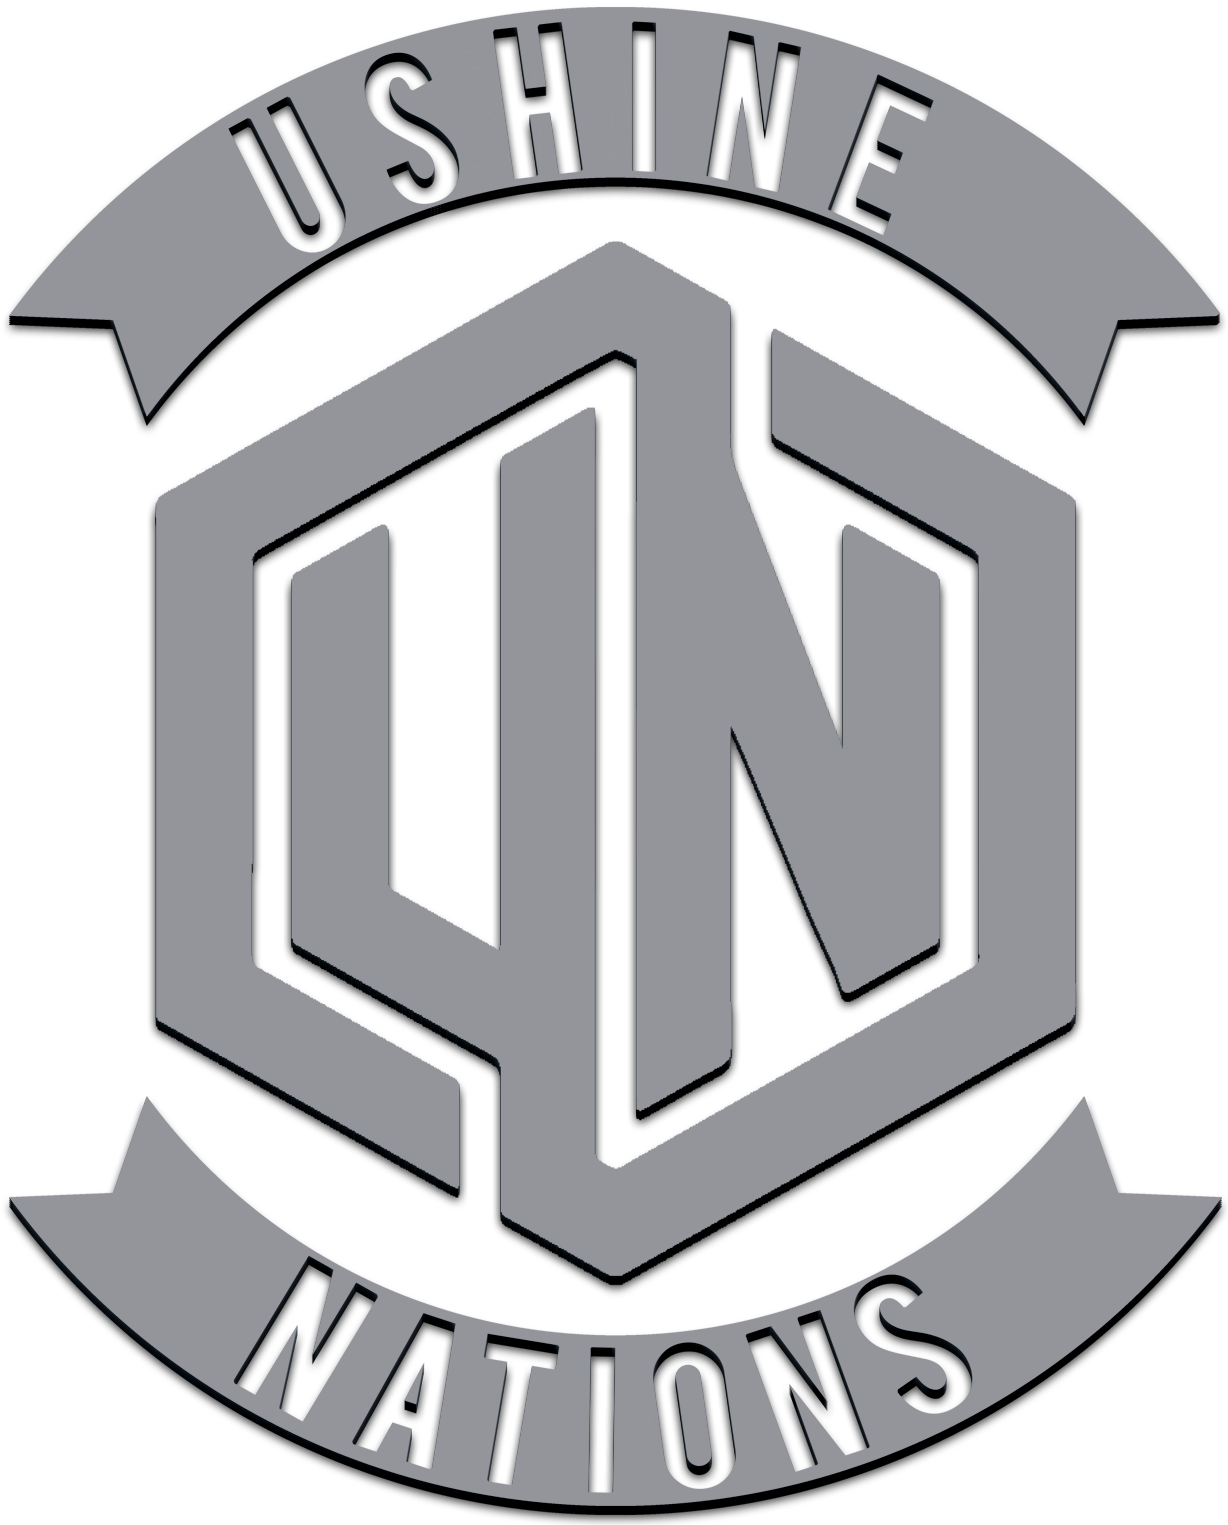 Health Insurance | Ushine Nations